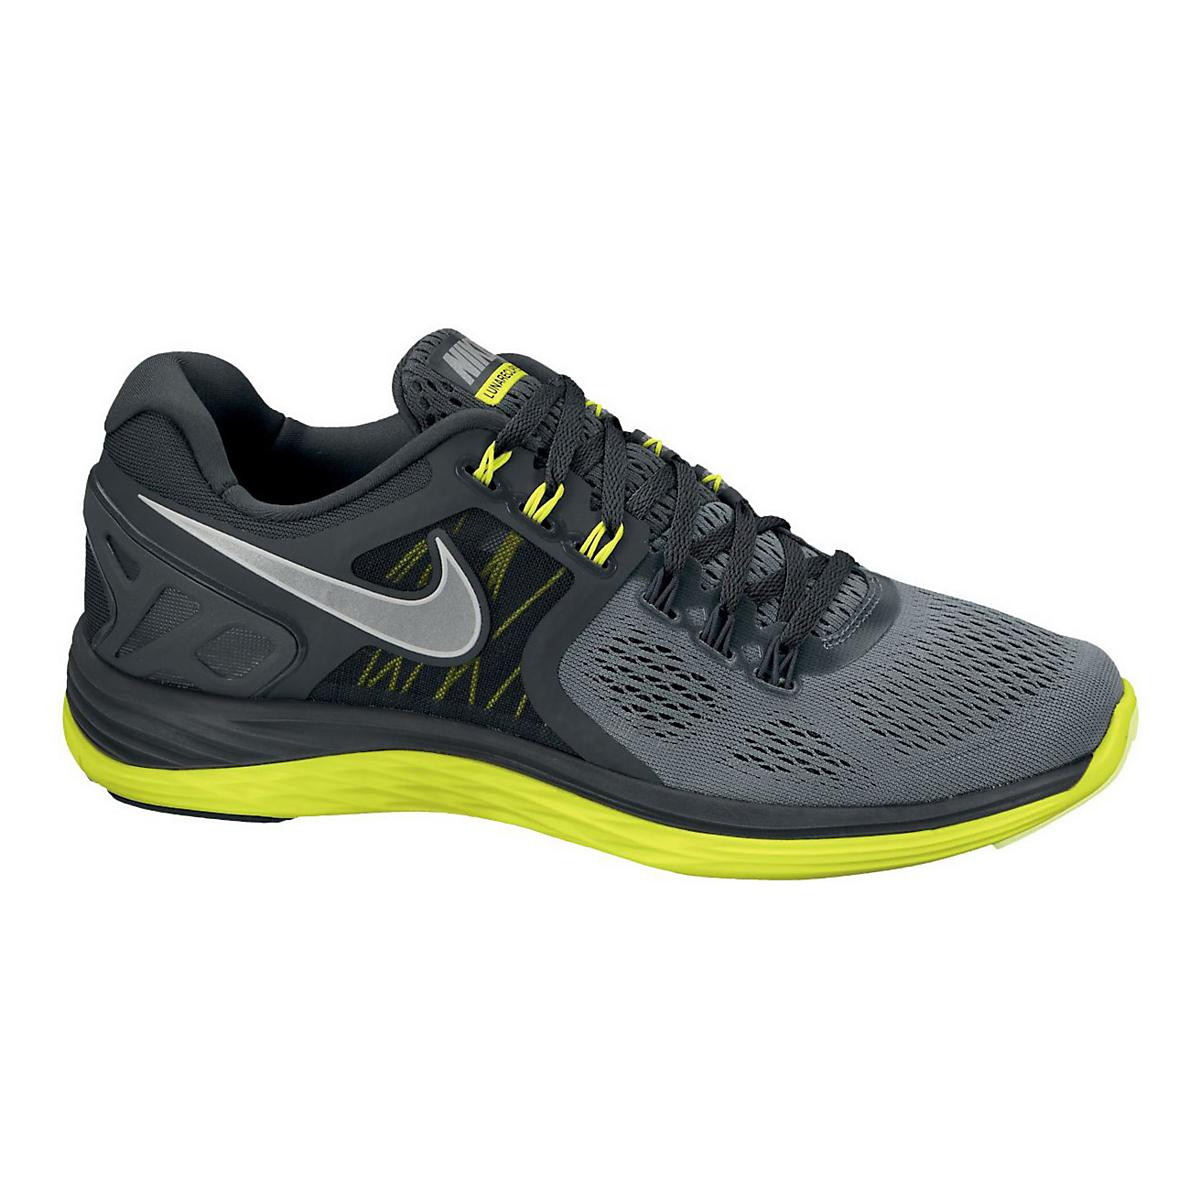 9323b5352c2 Mens Nike LunarEclipse 4 Running Shoe at Road Runner Sports